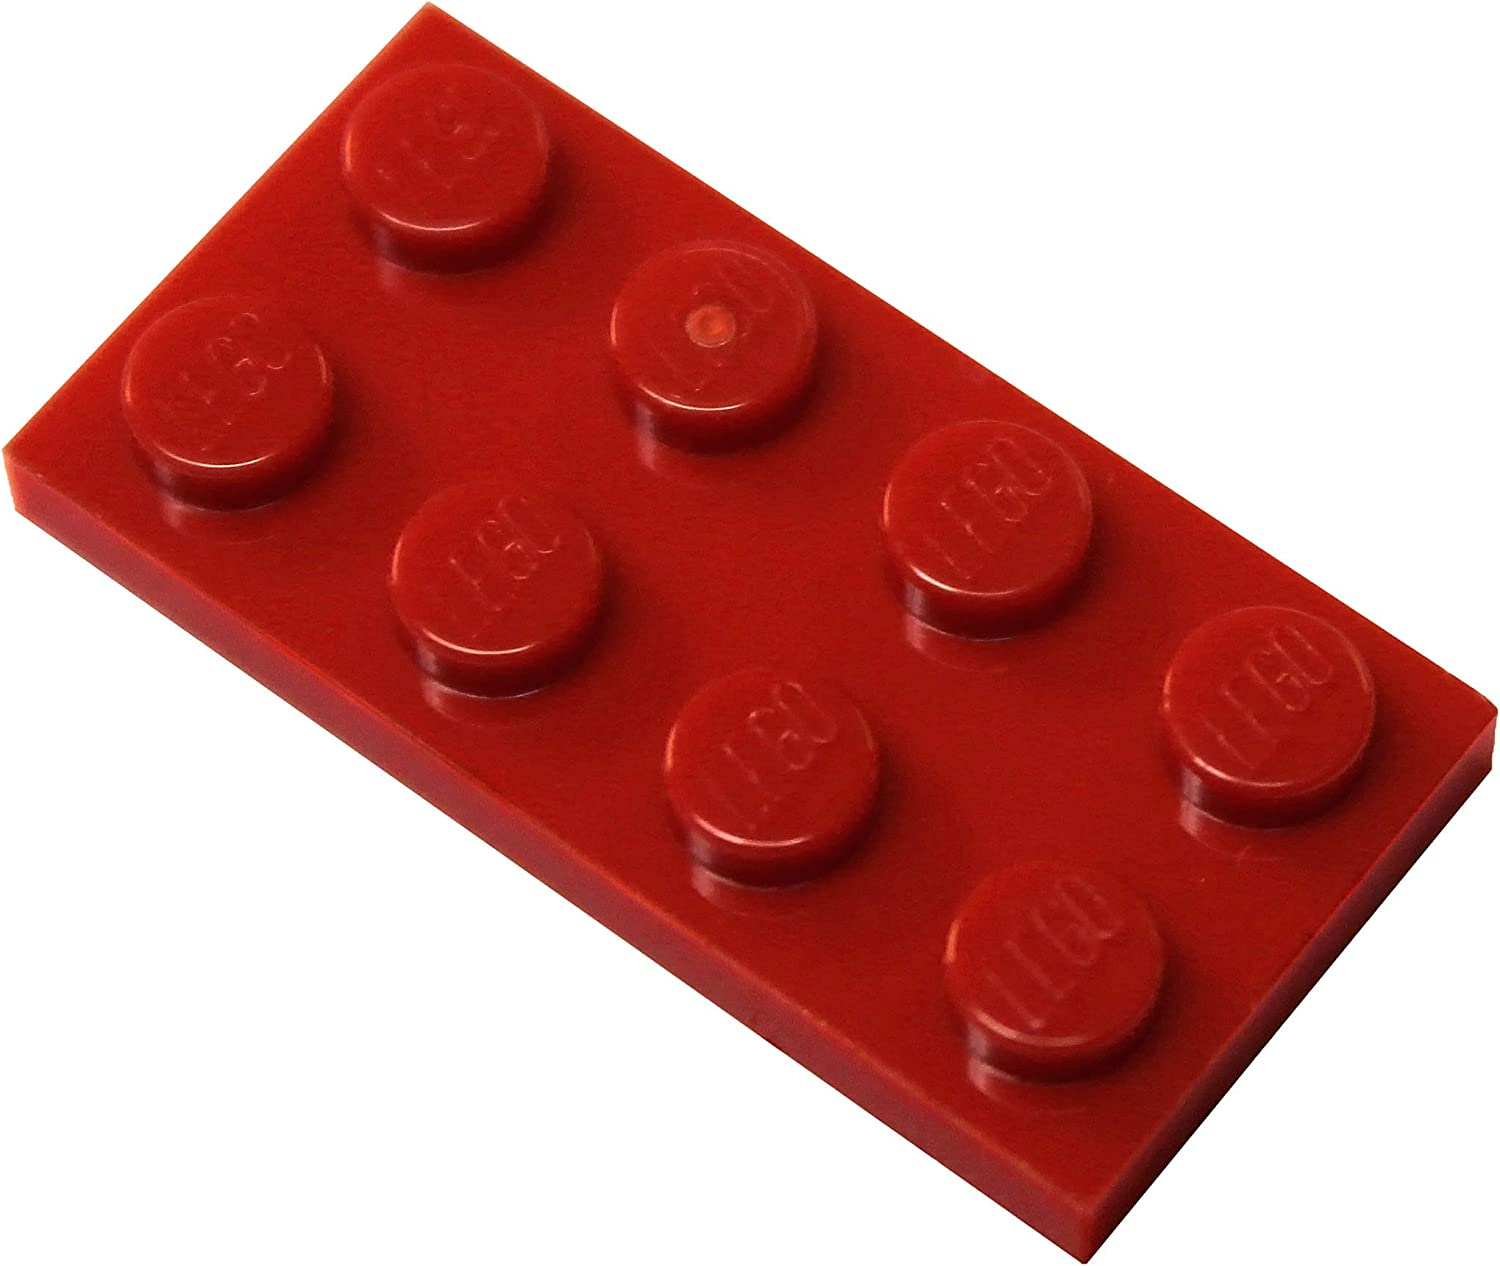 LEGO Parts and Pieces: Dark Red 2x4 Plate x100